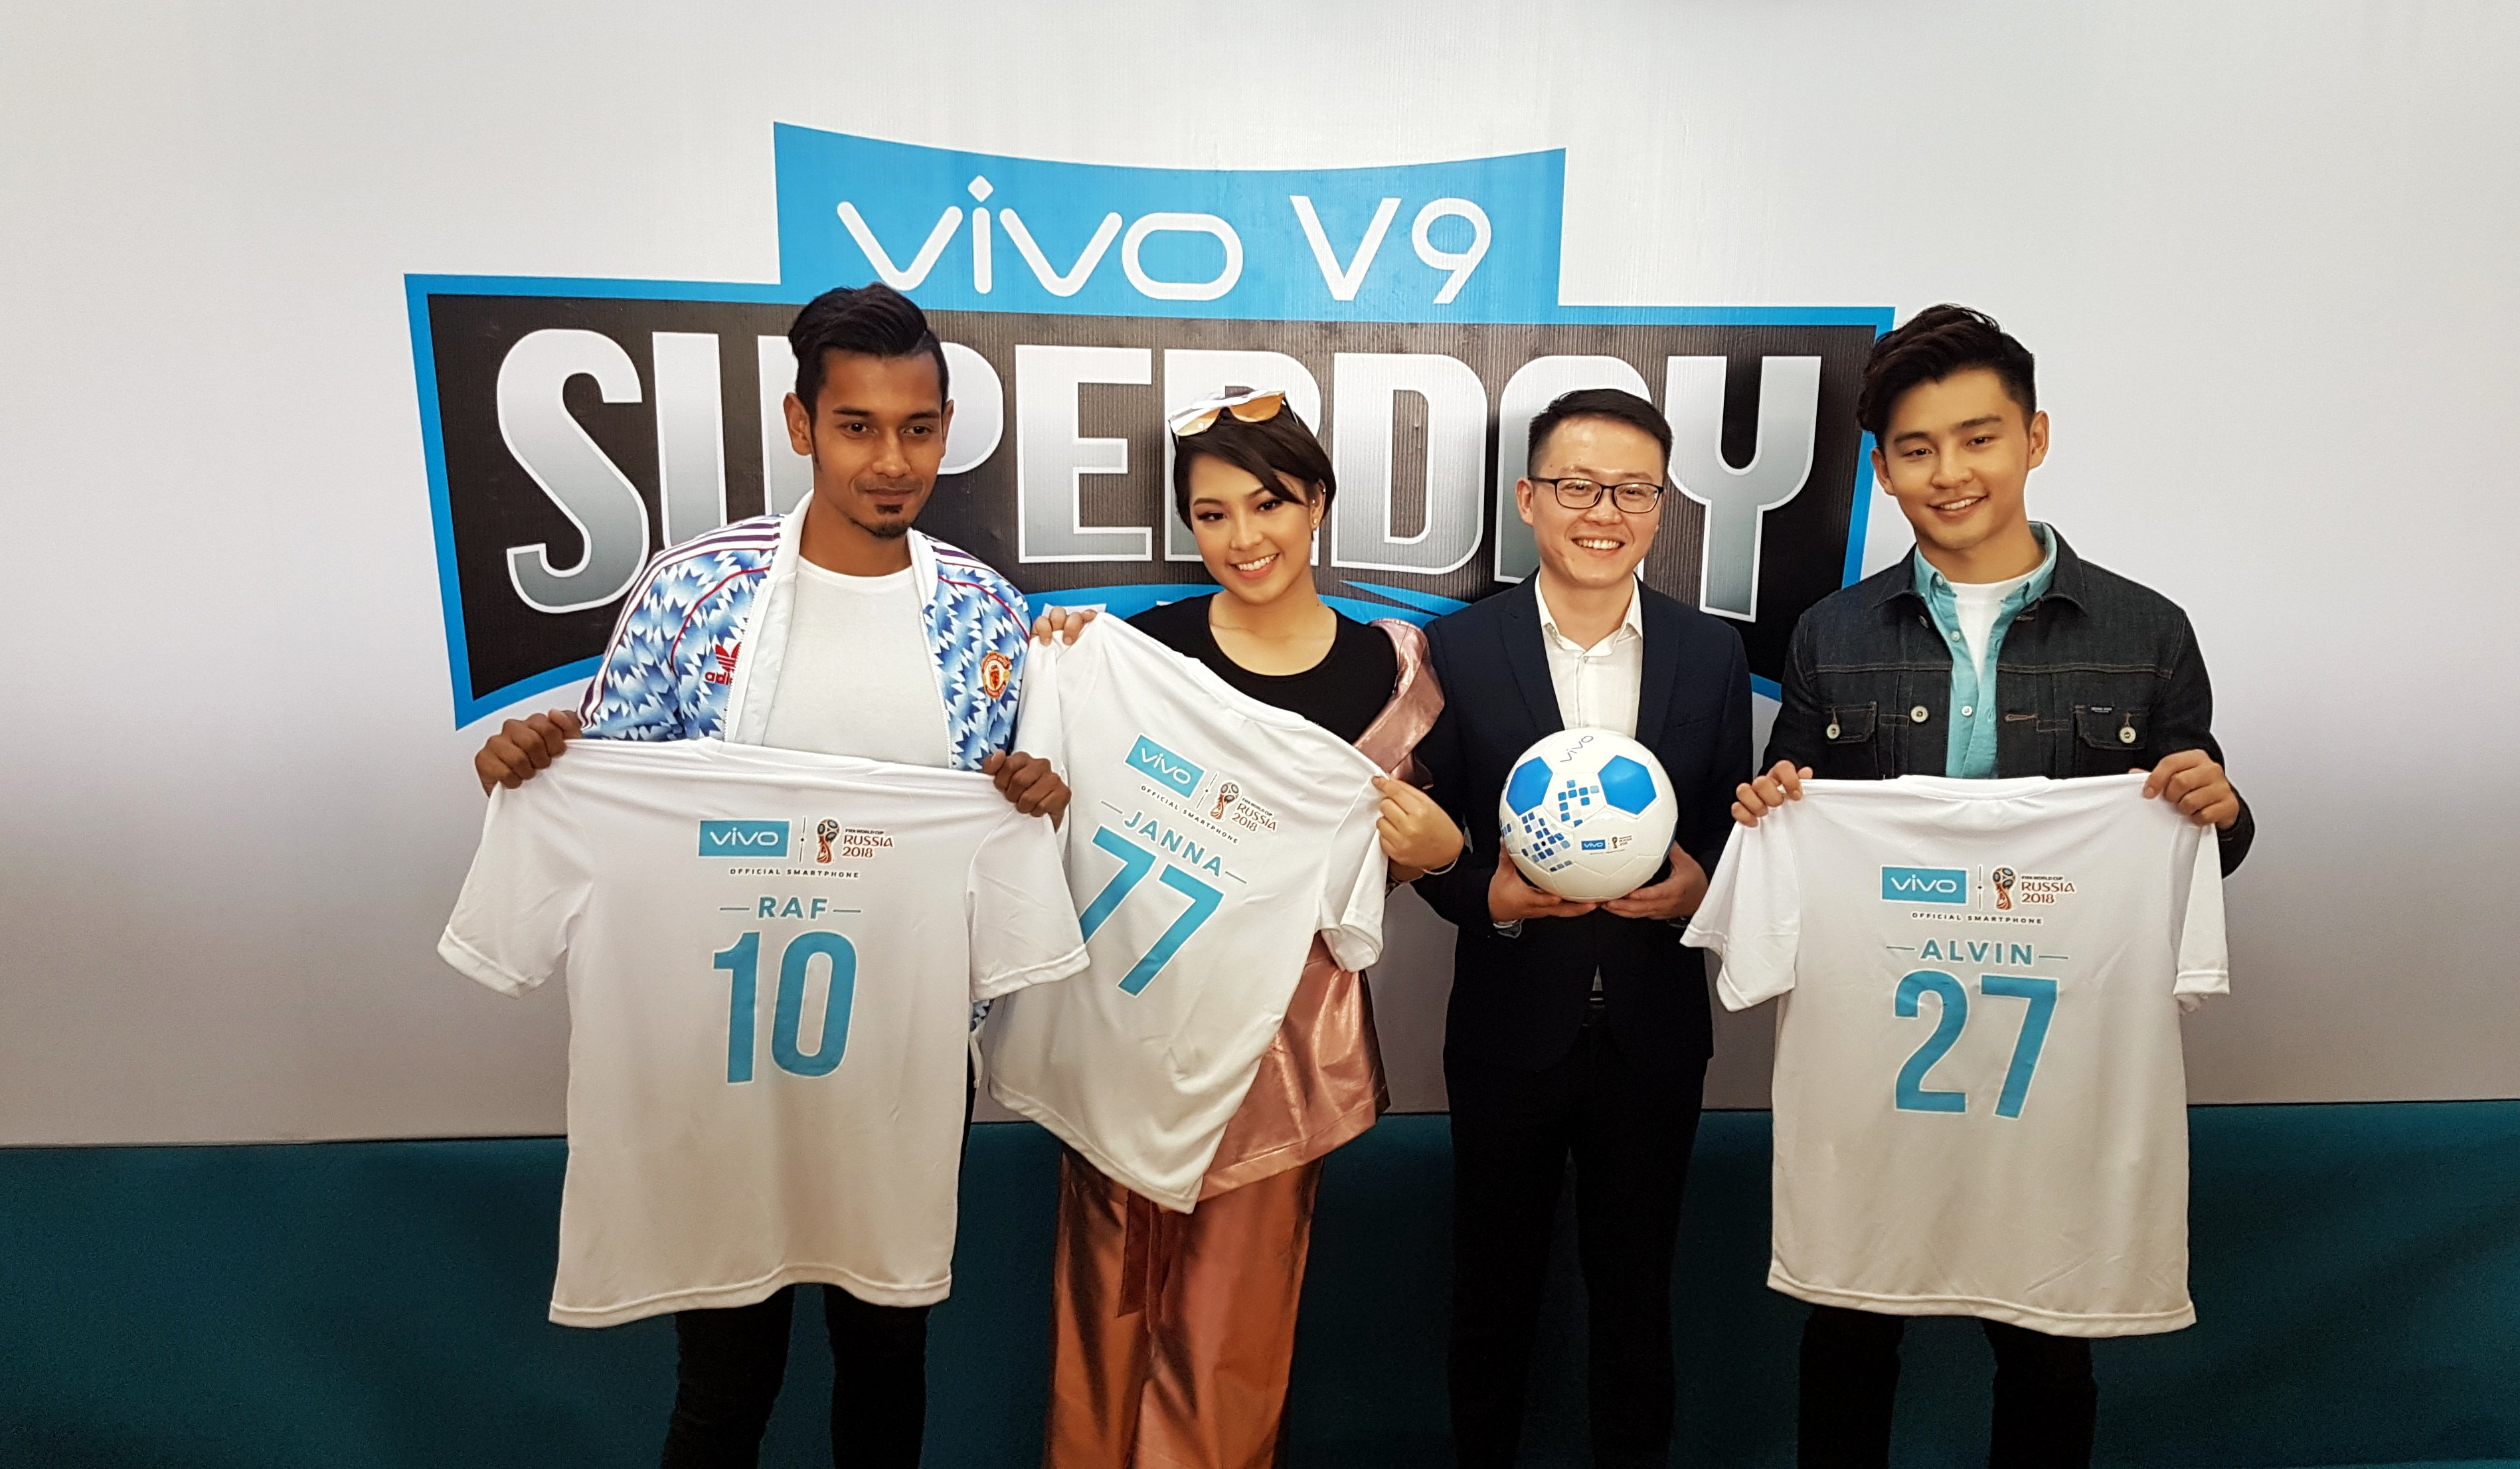 Vivo FIFA love affair